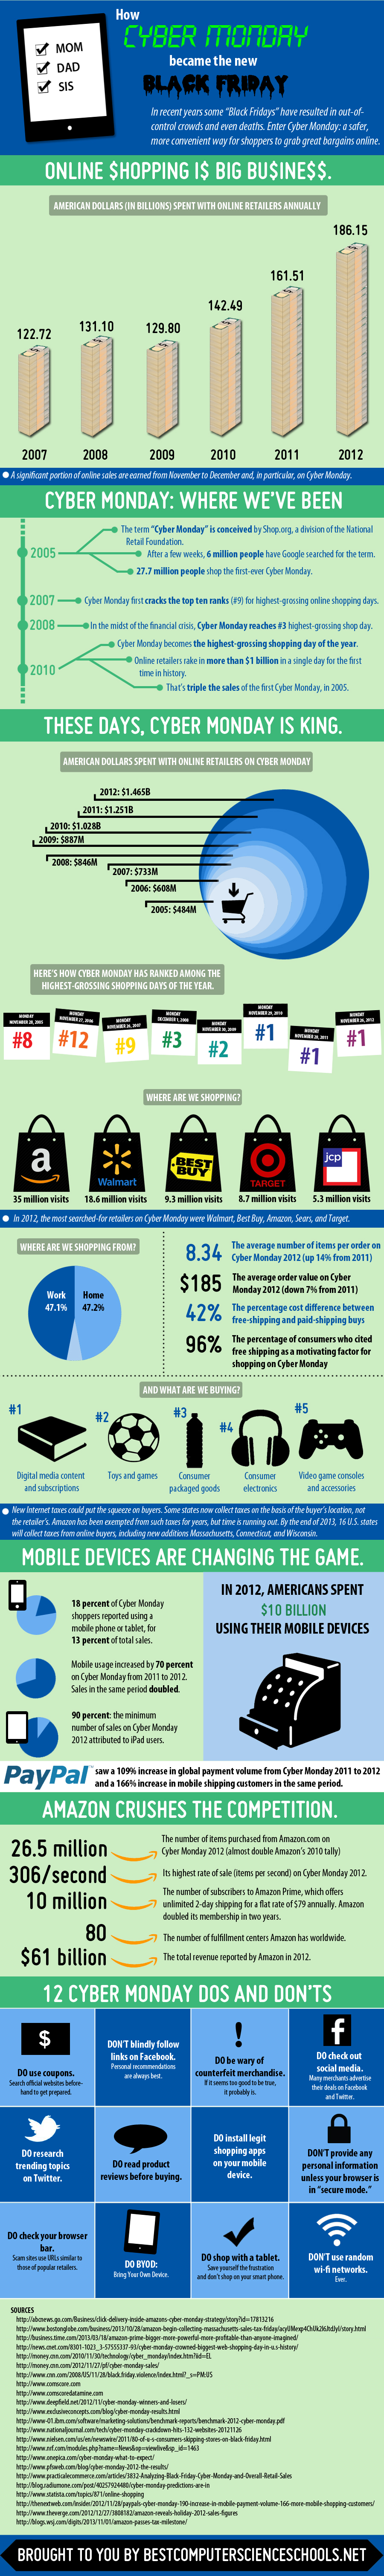 Cyber Monday: Behind the Numbers